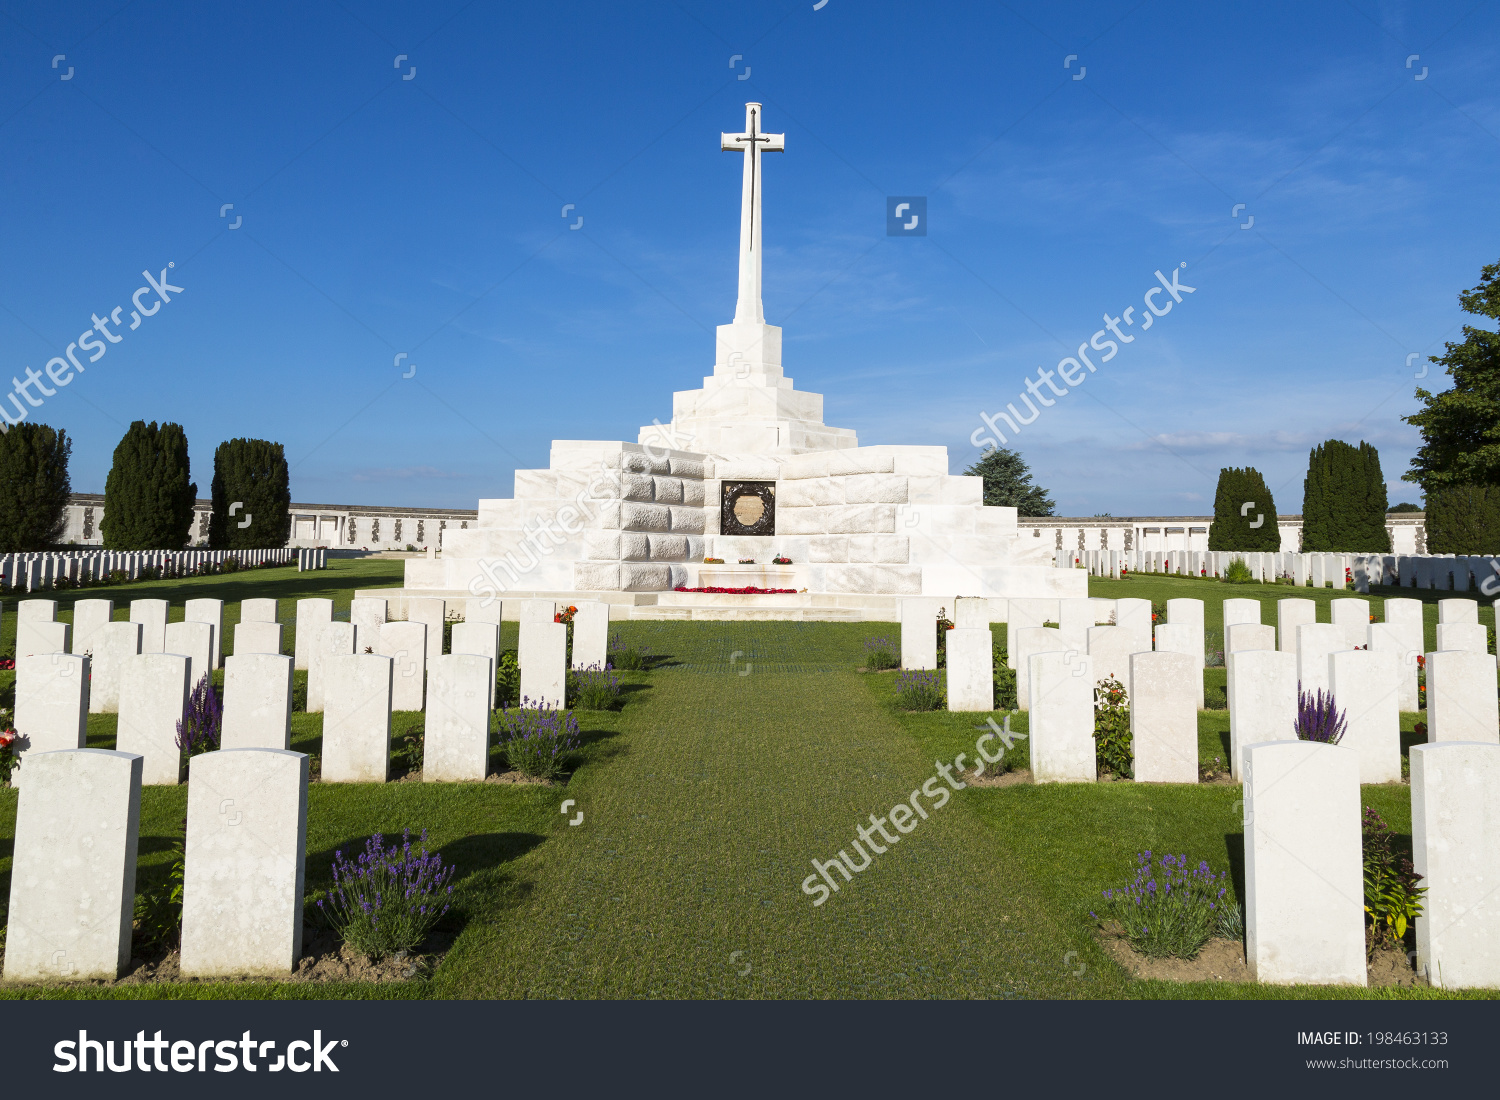 Tyne Cot World War One Cemetery Stock Photo 198463133.